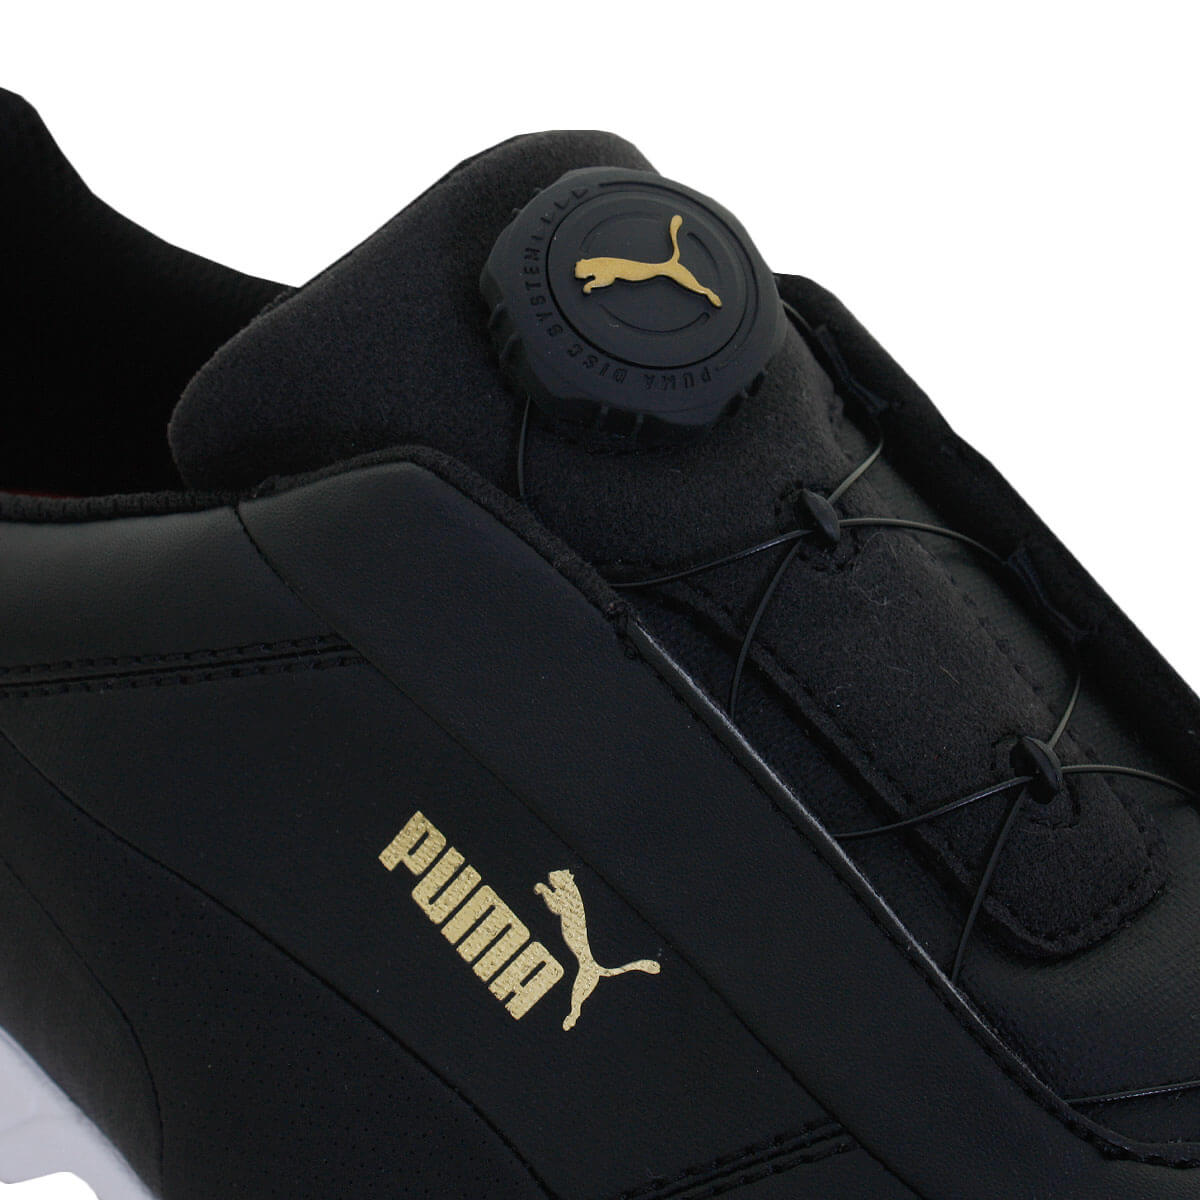 Details about Puma Golf Mens Ignite Drive Disc Synthetic Waterproof Golf Shoes 51% OFF RRP